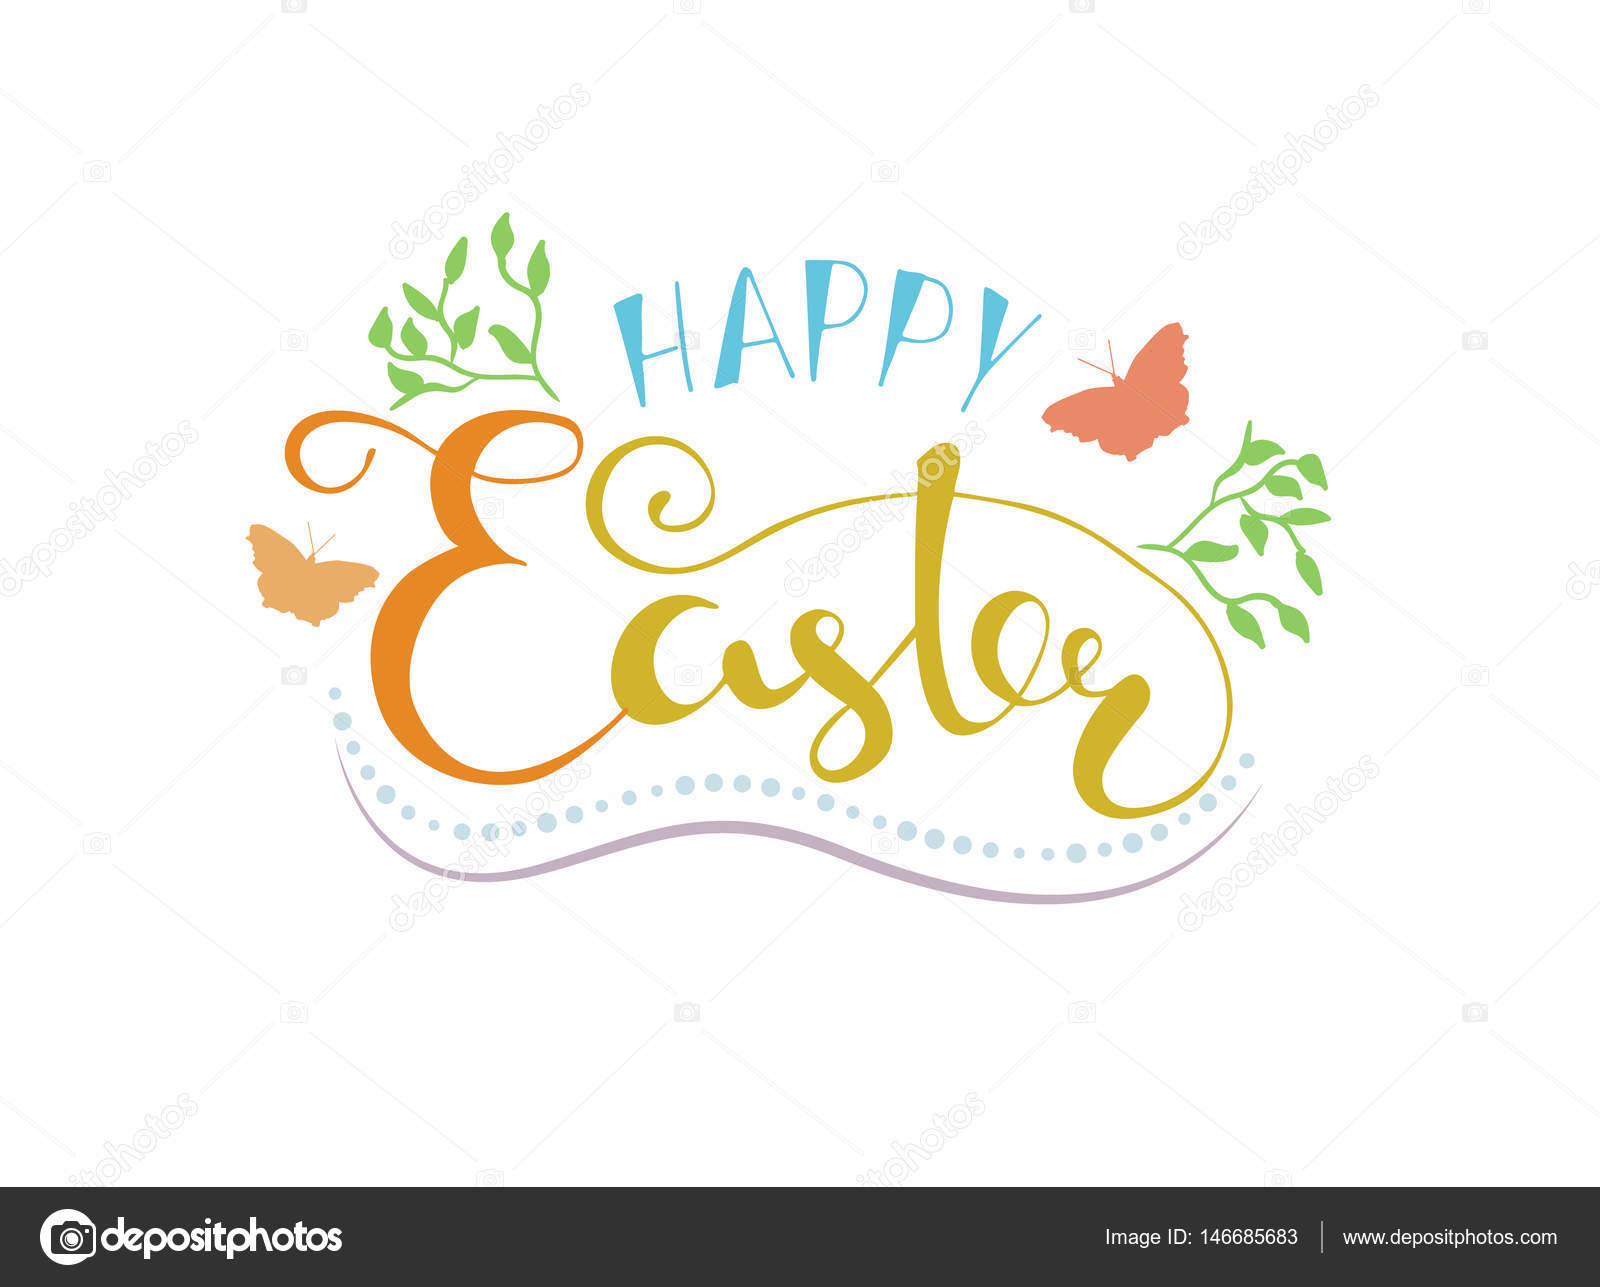 Happy easter lettering typography seasons greetings stock happy easter lettering typography seasons greetings stock vector kristyandbryce Choice Image